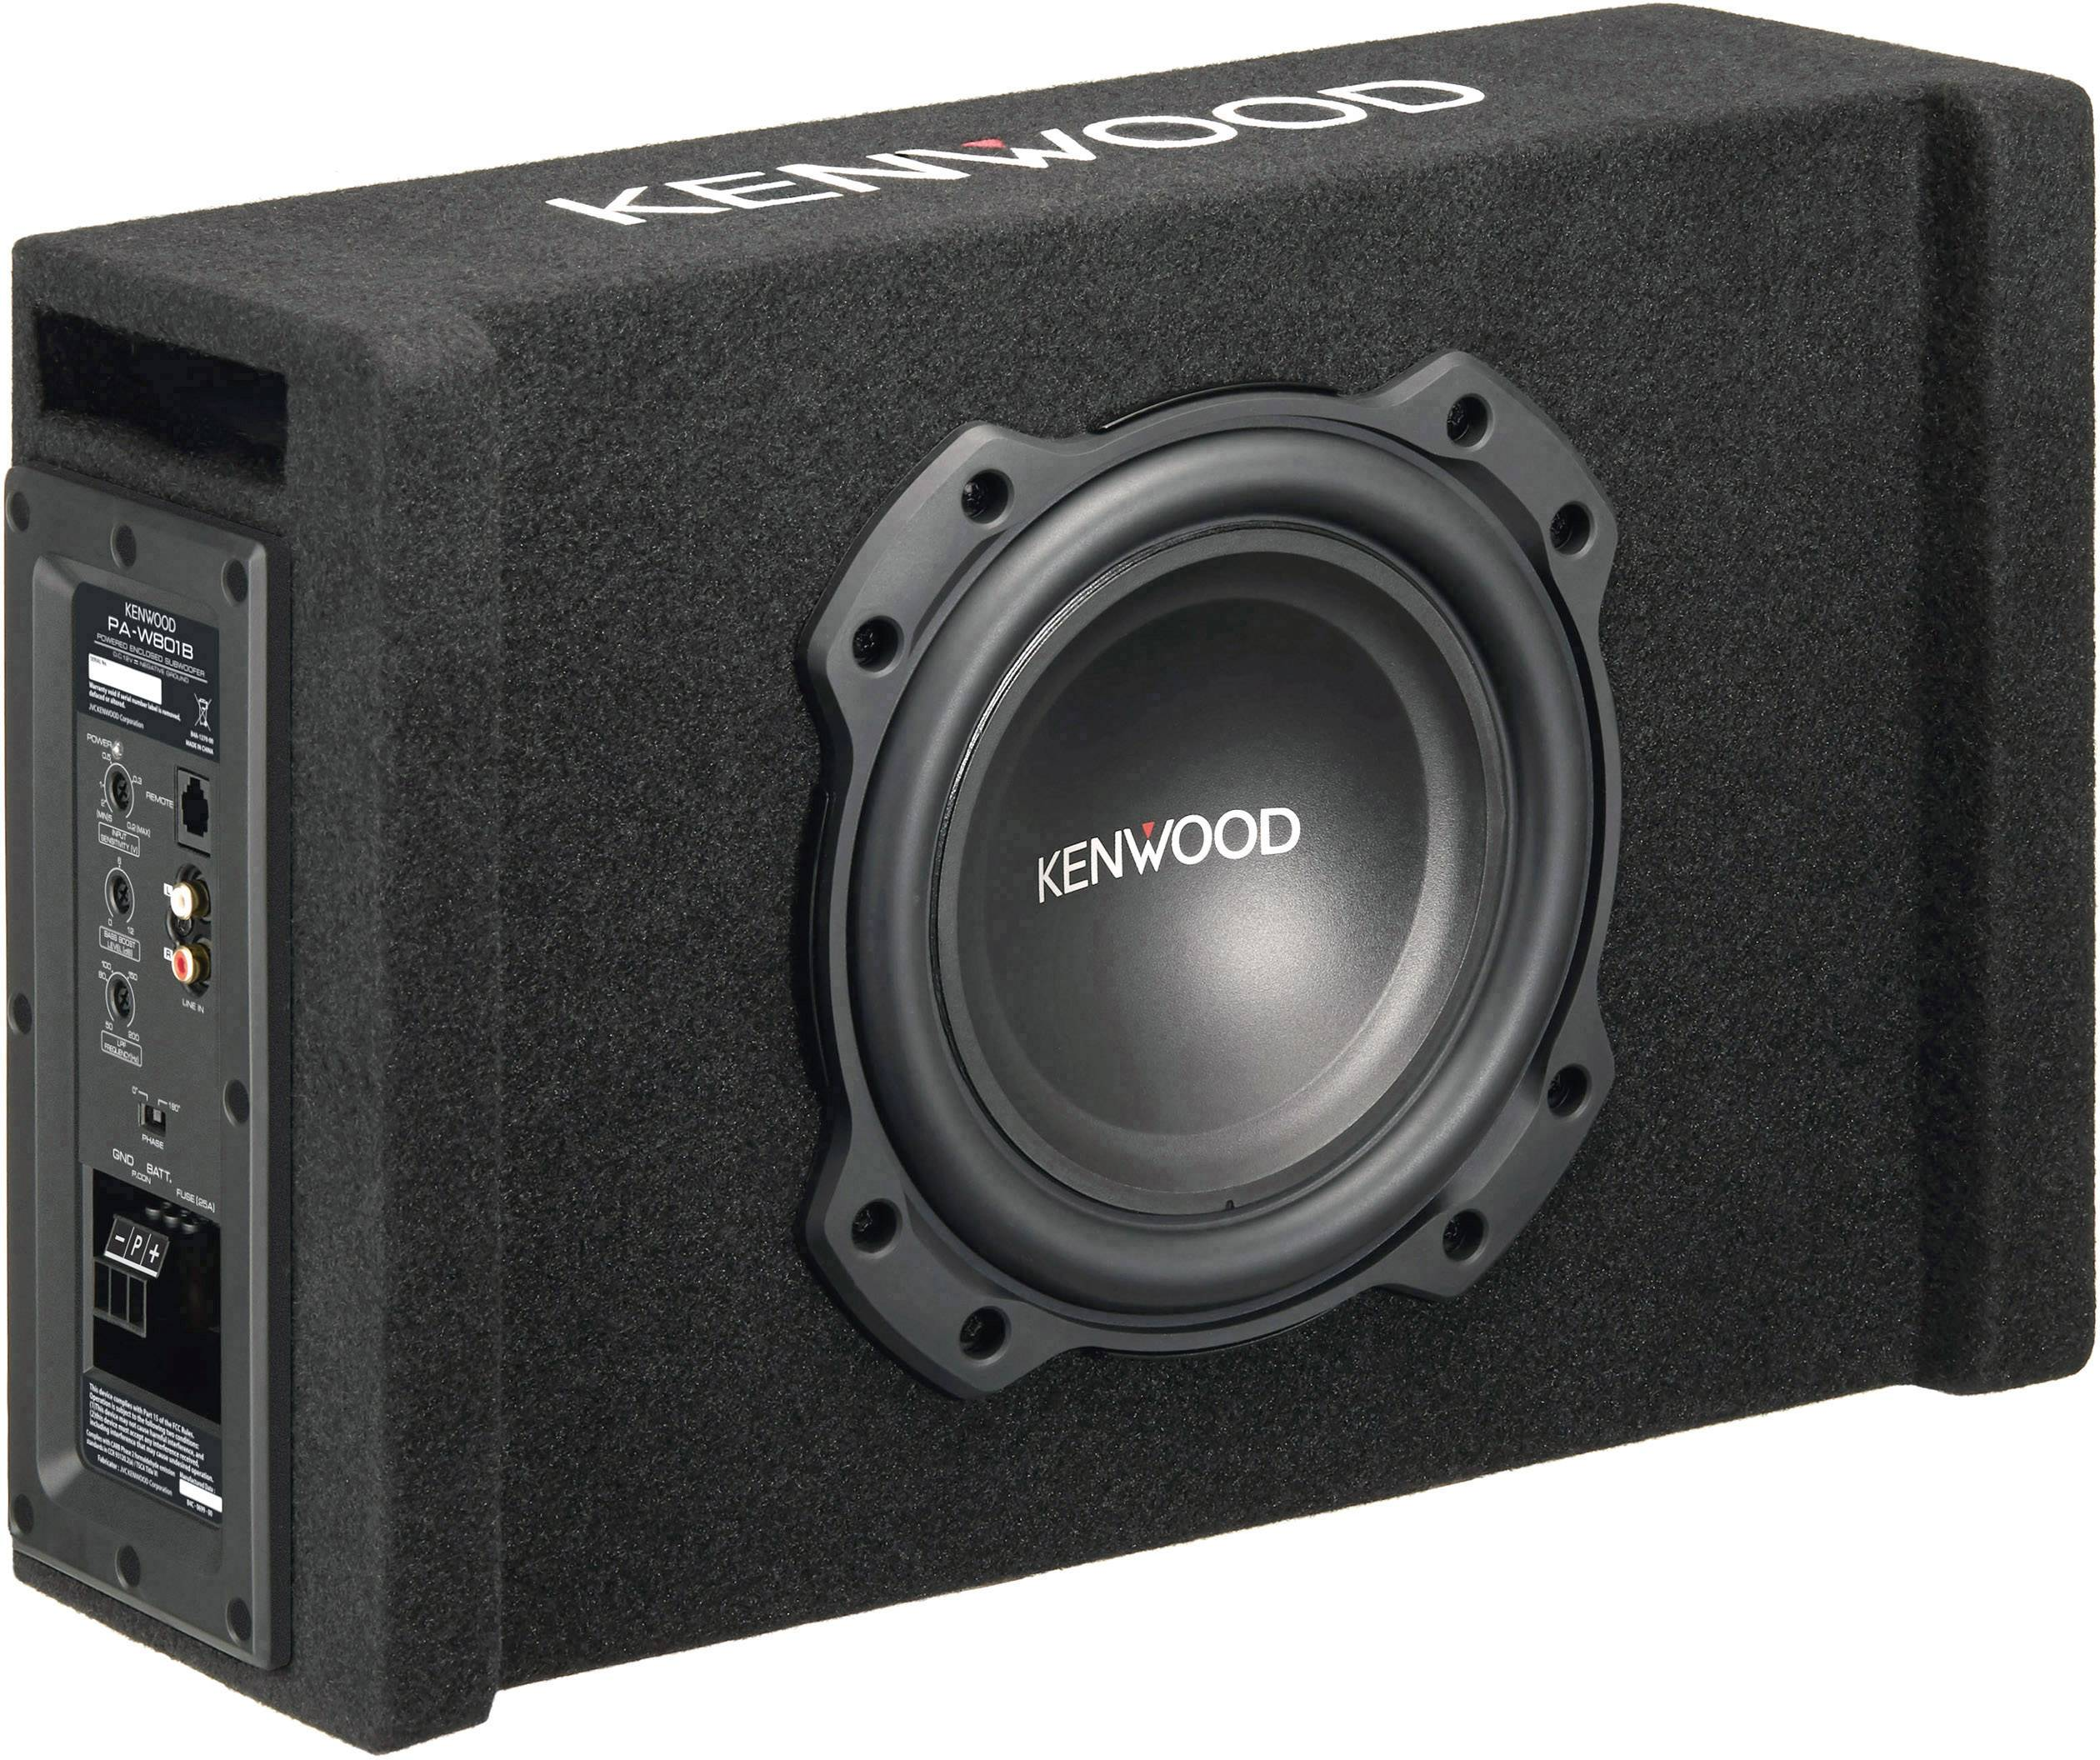 Kenwood PA-W801B Car subwoofer active 400 W | Conrad com